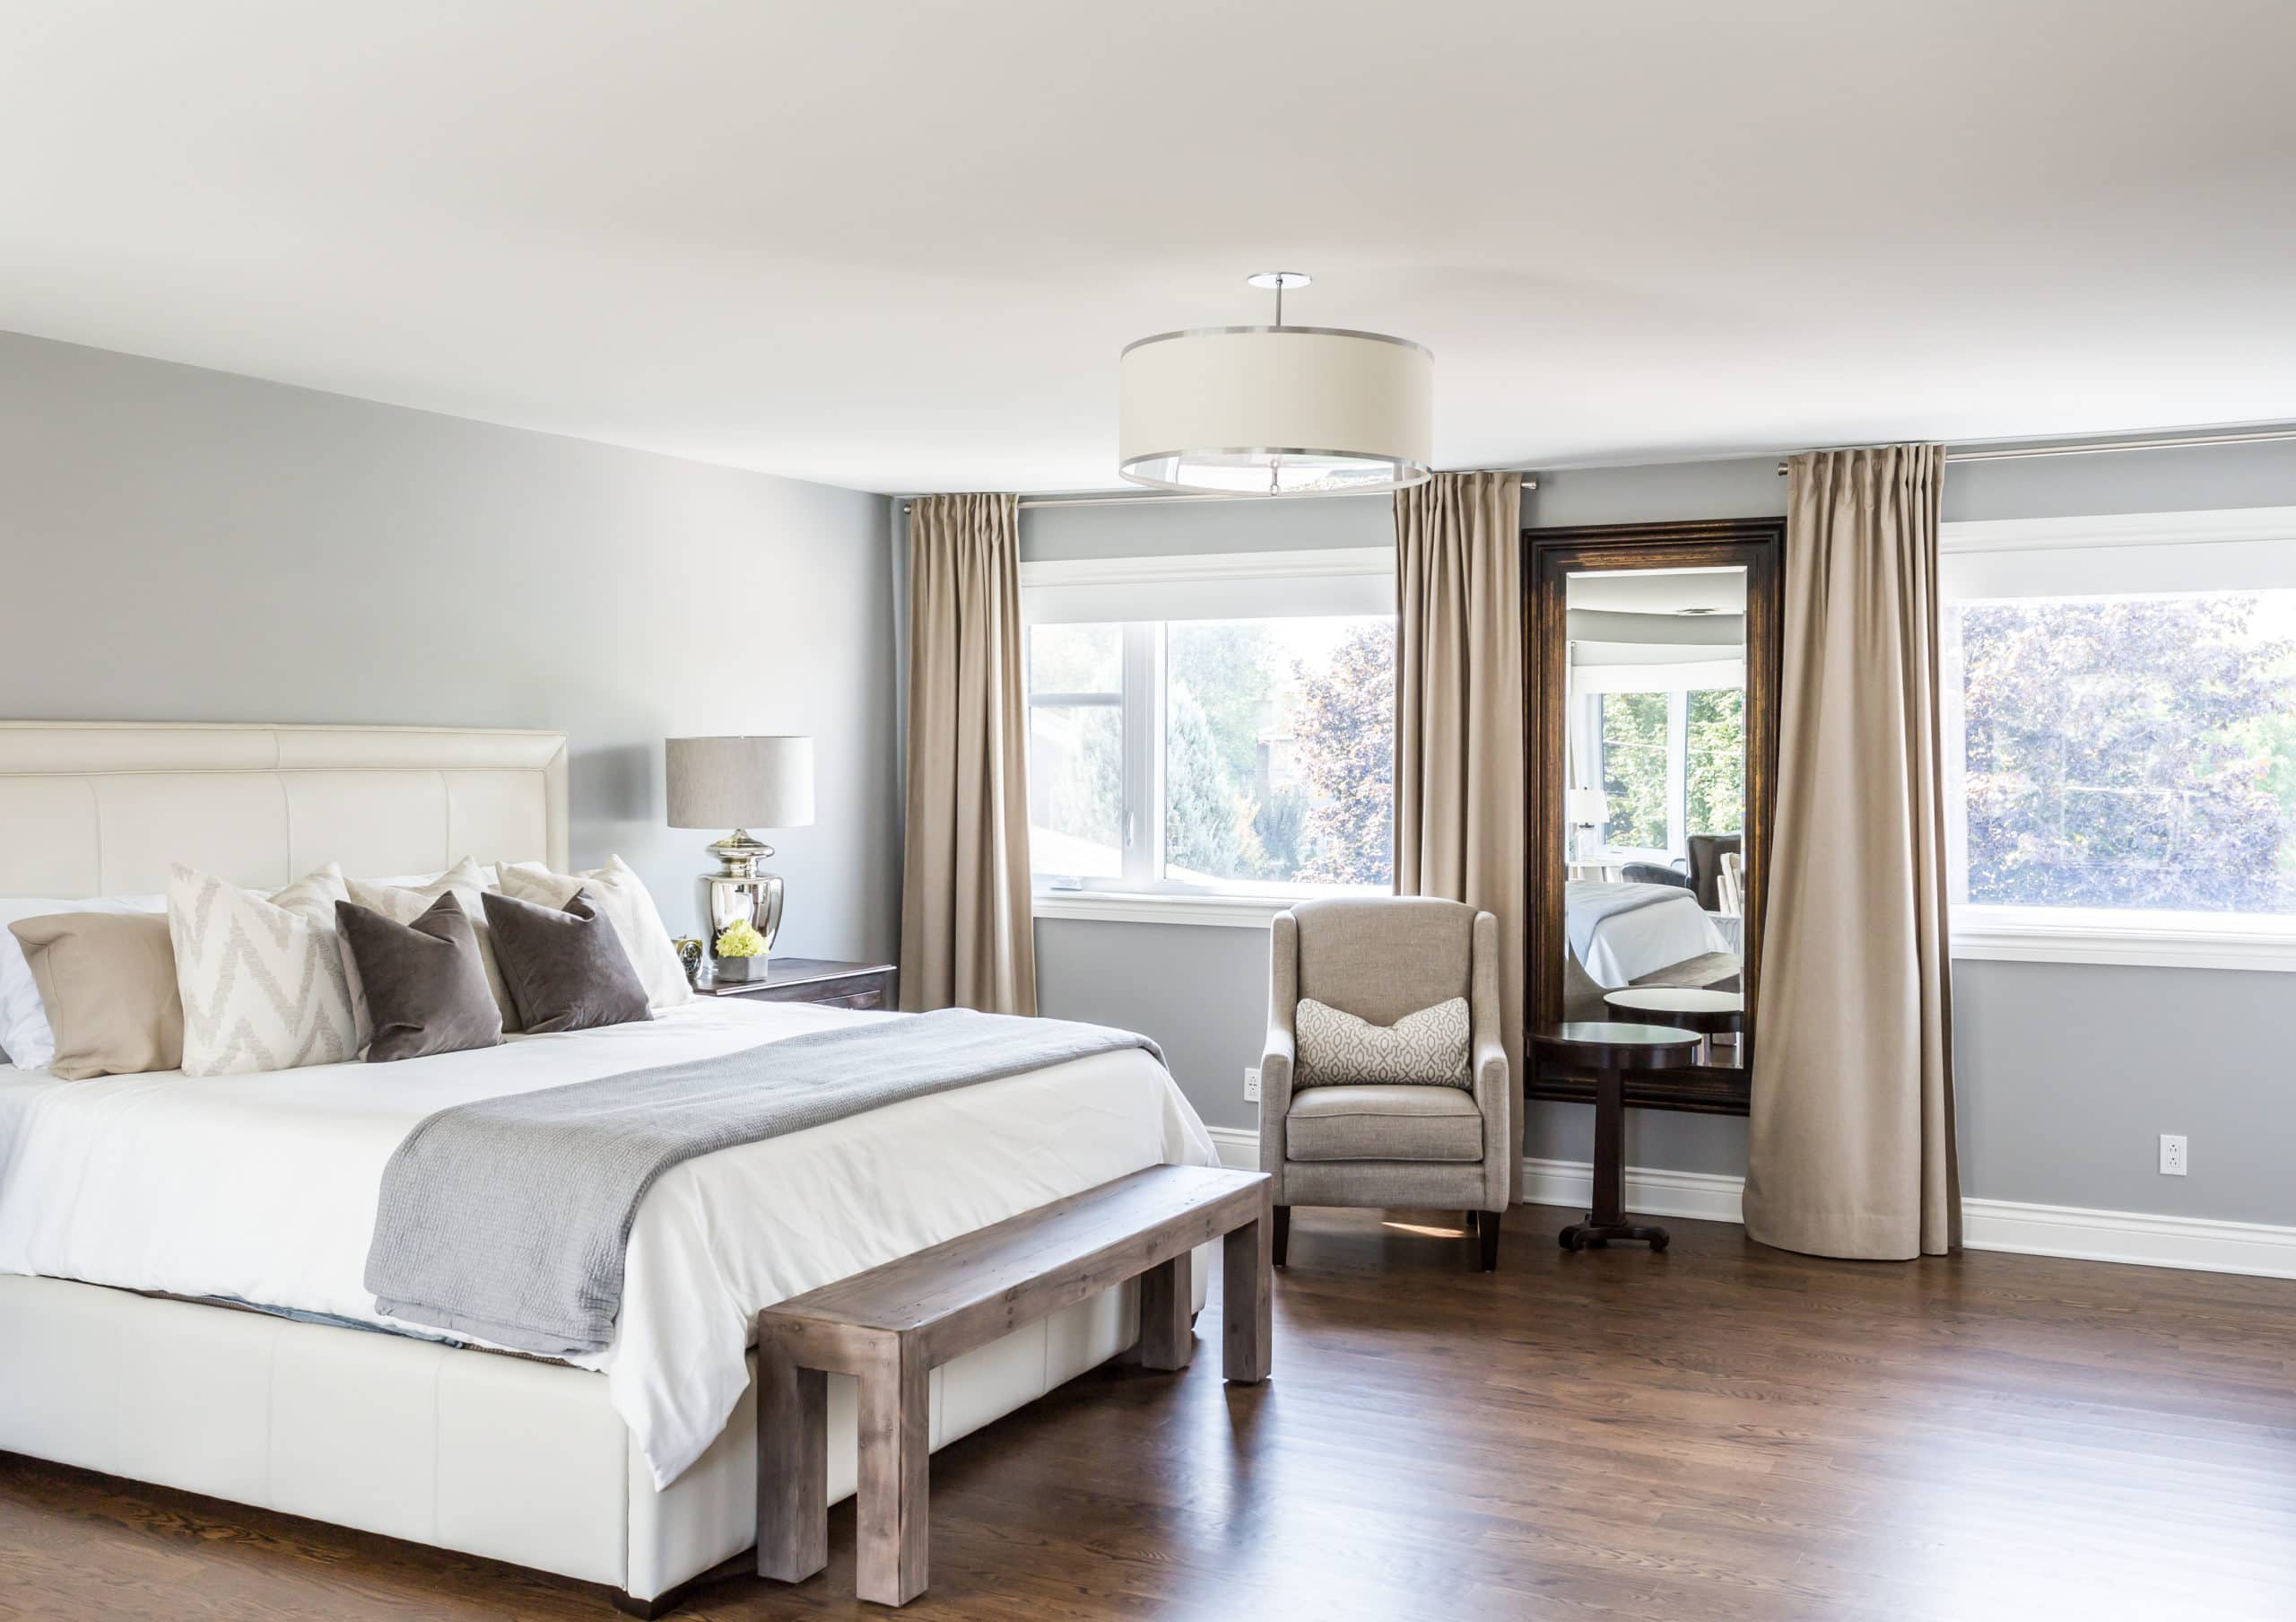 Large, modern master bedroom containing a large white bed